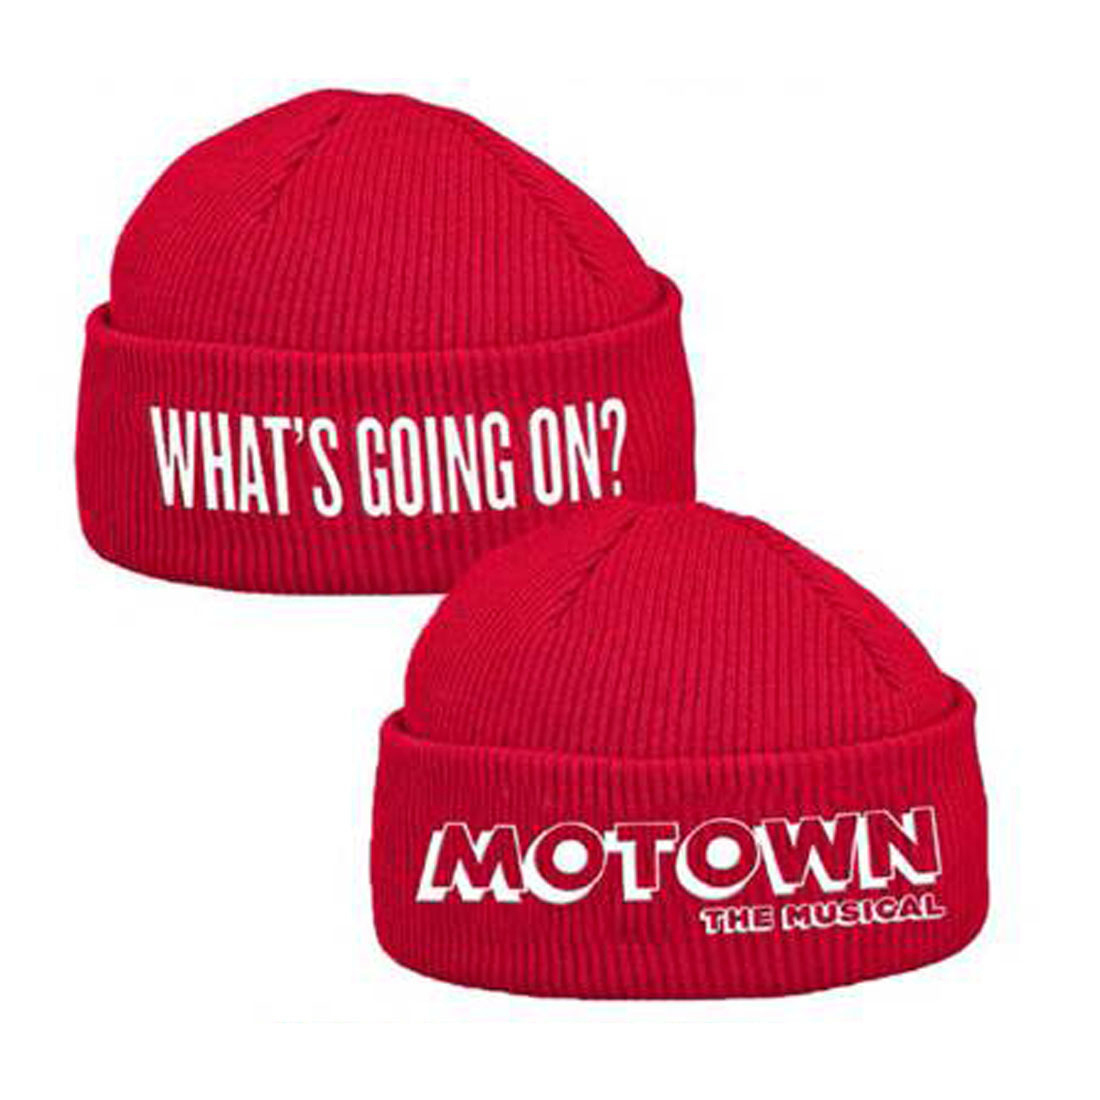 What's Going On Motown Red Beanie